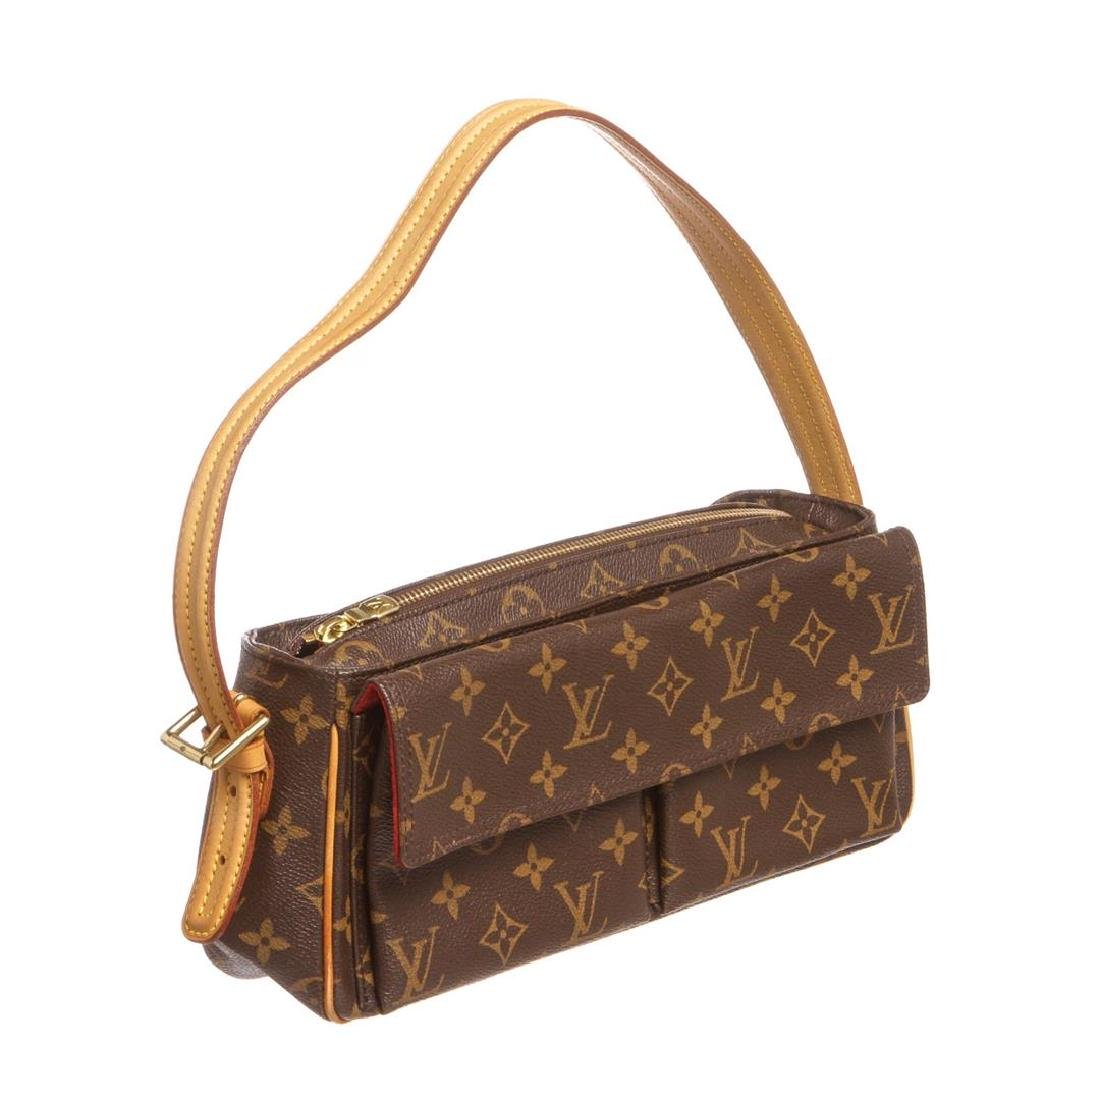 Louis Vuitton Monogram Canvas Leather Viva Cite MM Bag - 2